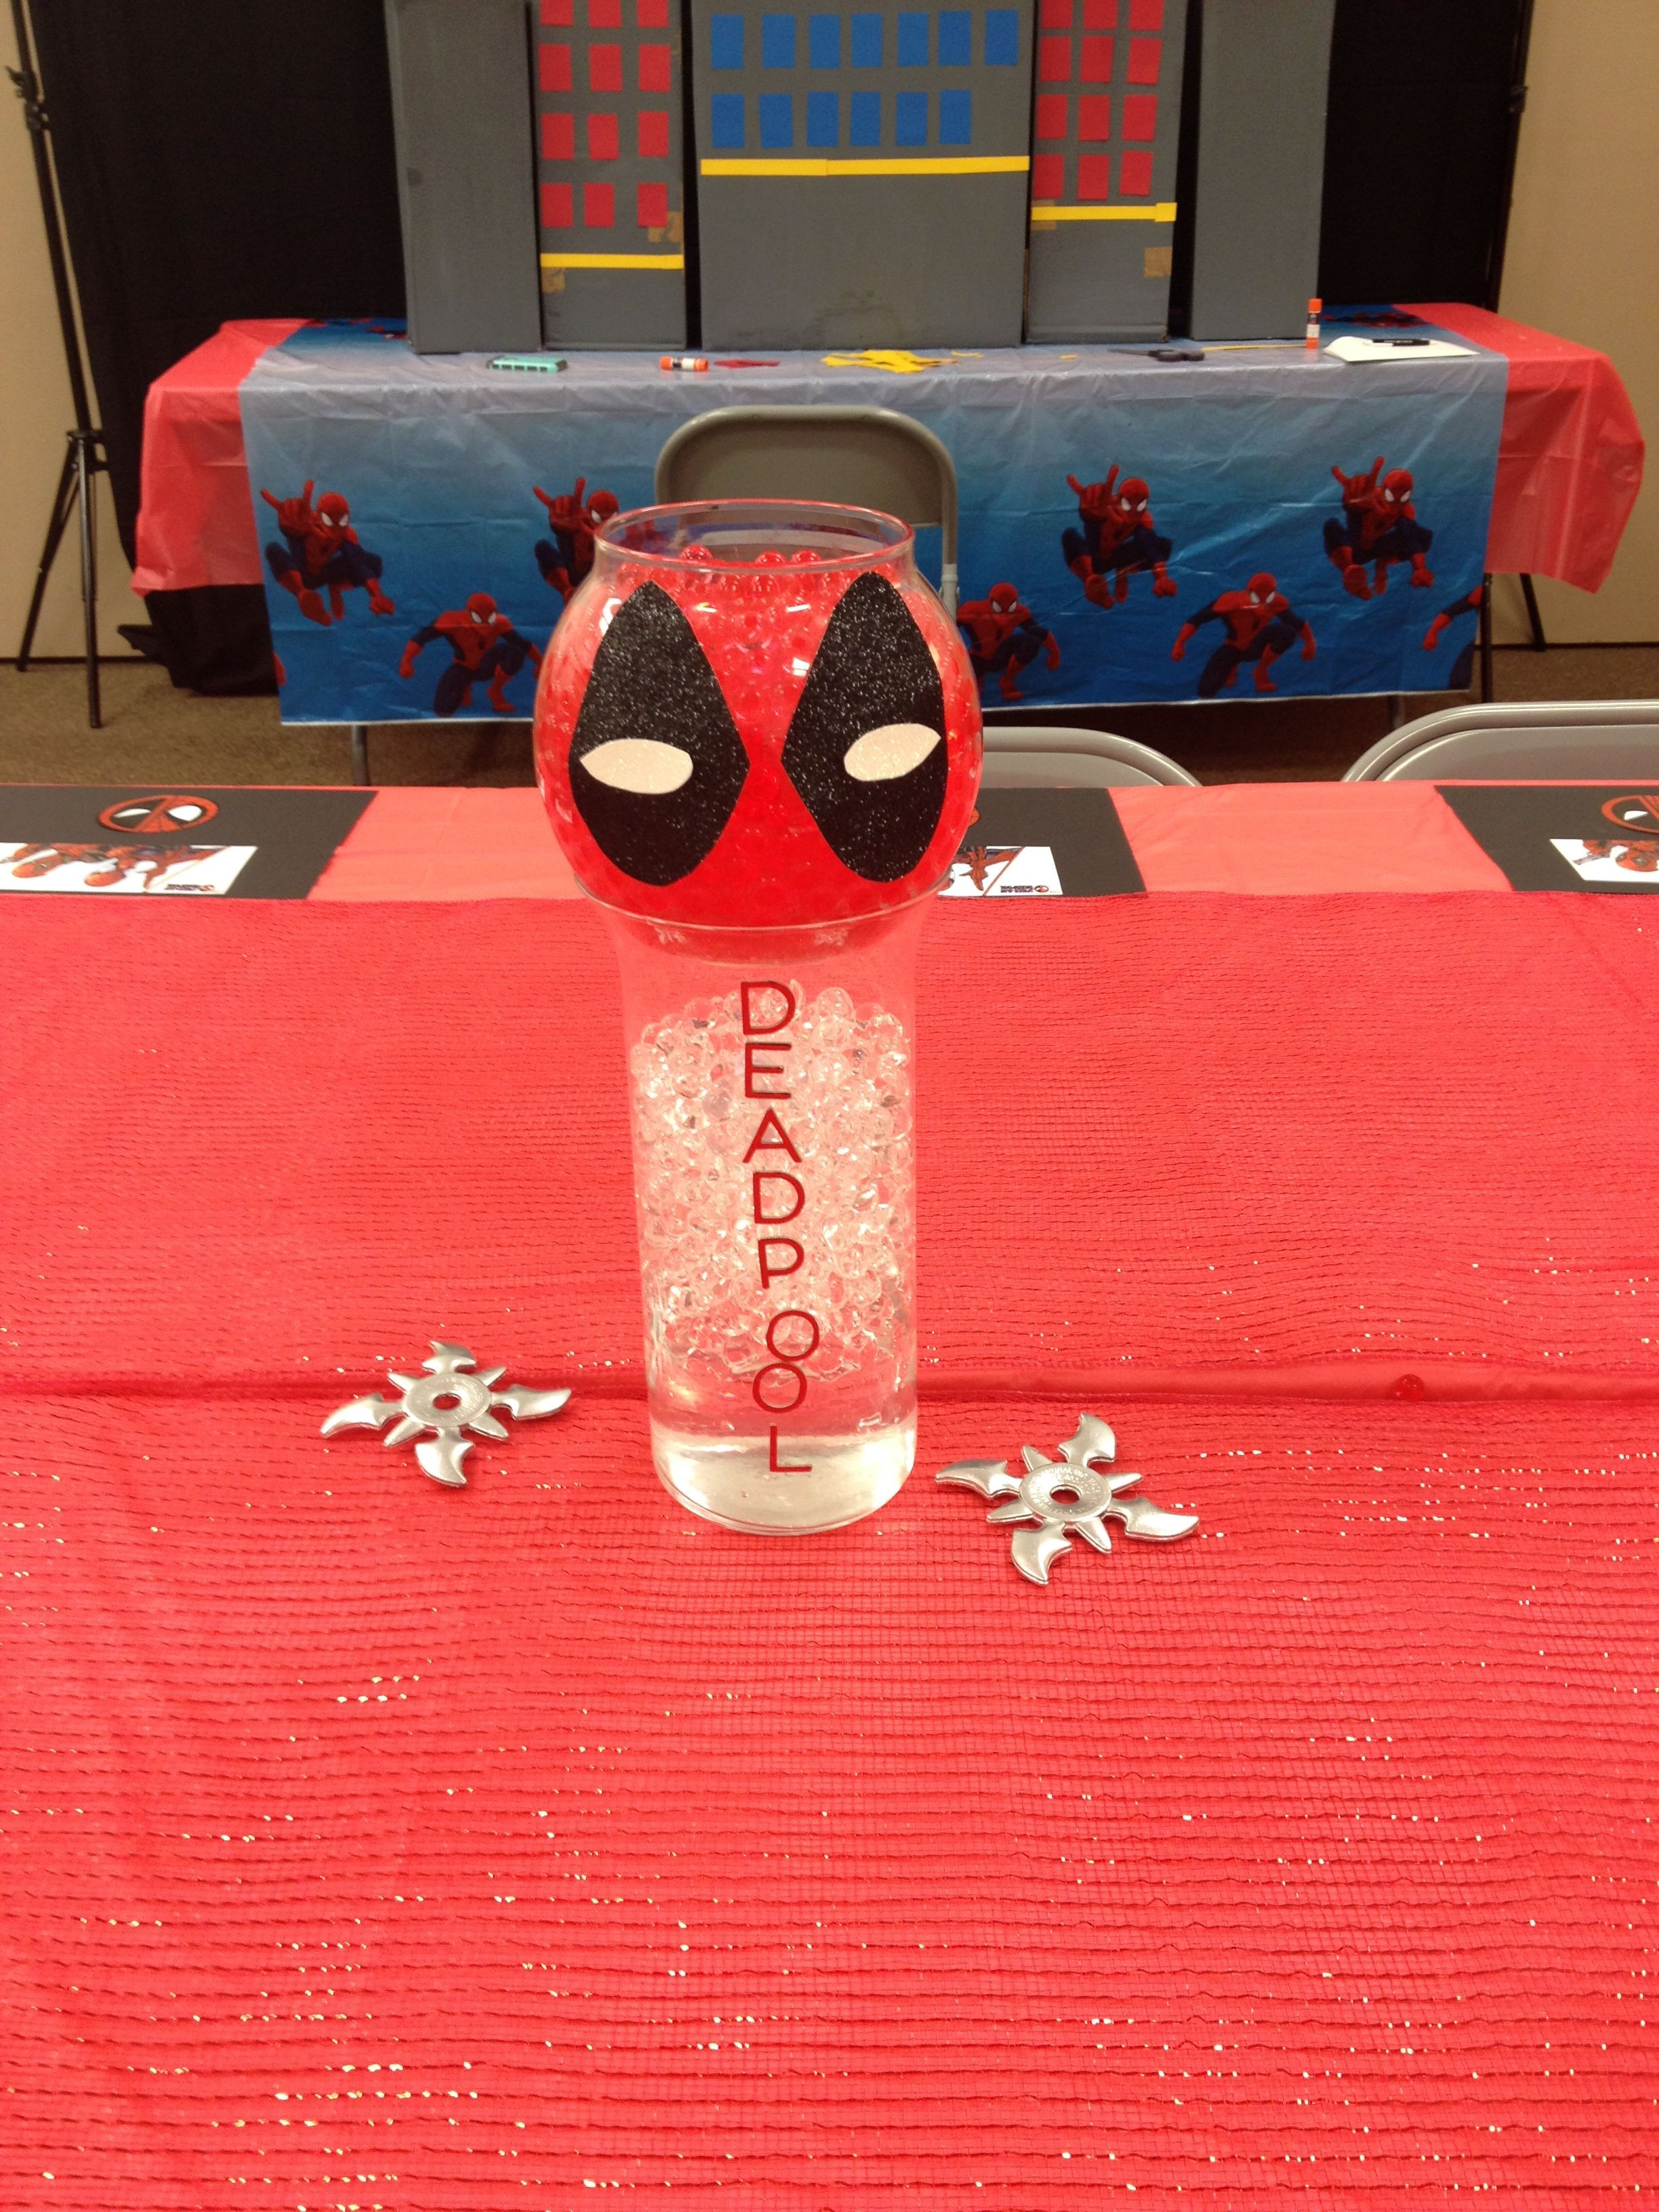 Best ideas about Deadpool Birthday Decorations . Save or Pin Spider man vs Deadpool Birthday Party 4 Now.